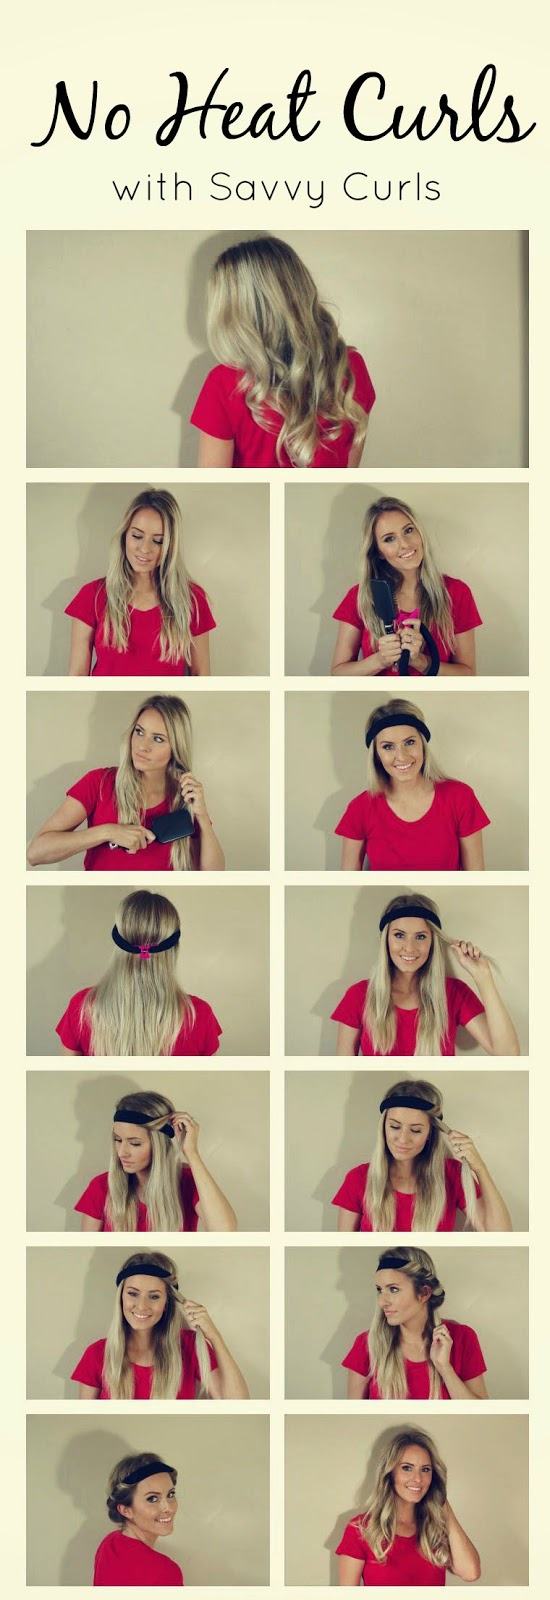 7 Easy Ways To Curl Your Hair Without Heat - Viral Buzz f79844c2c26